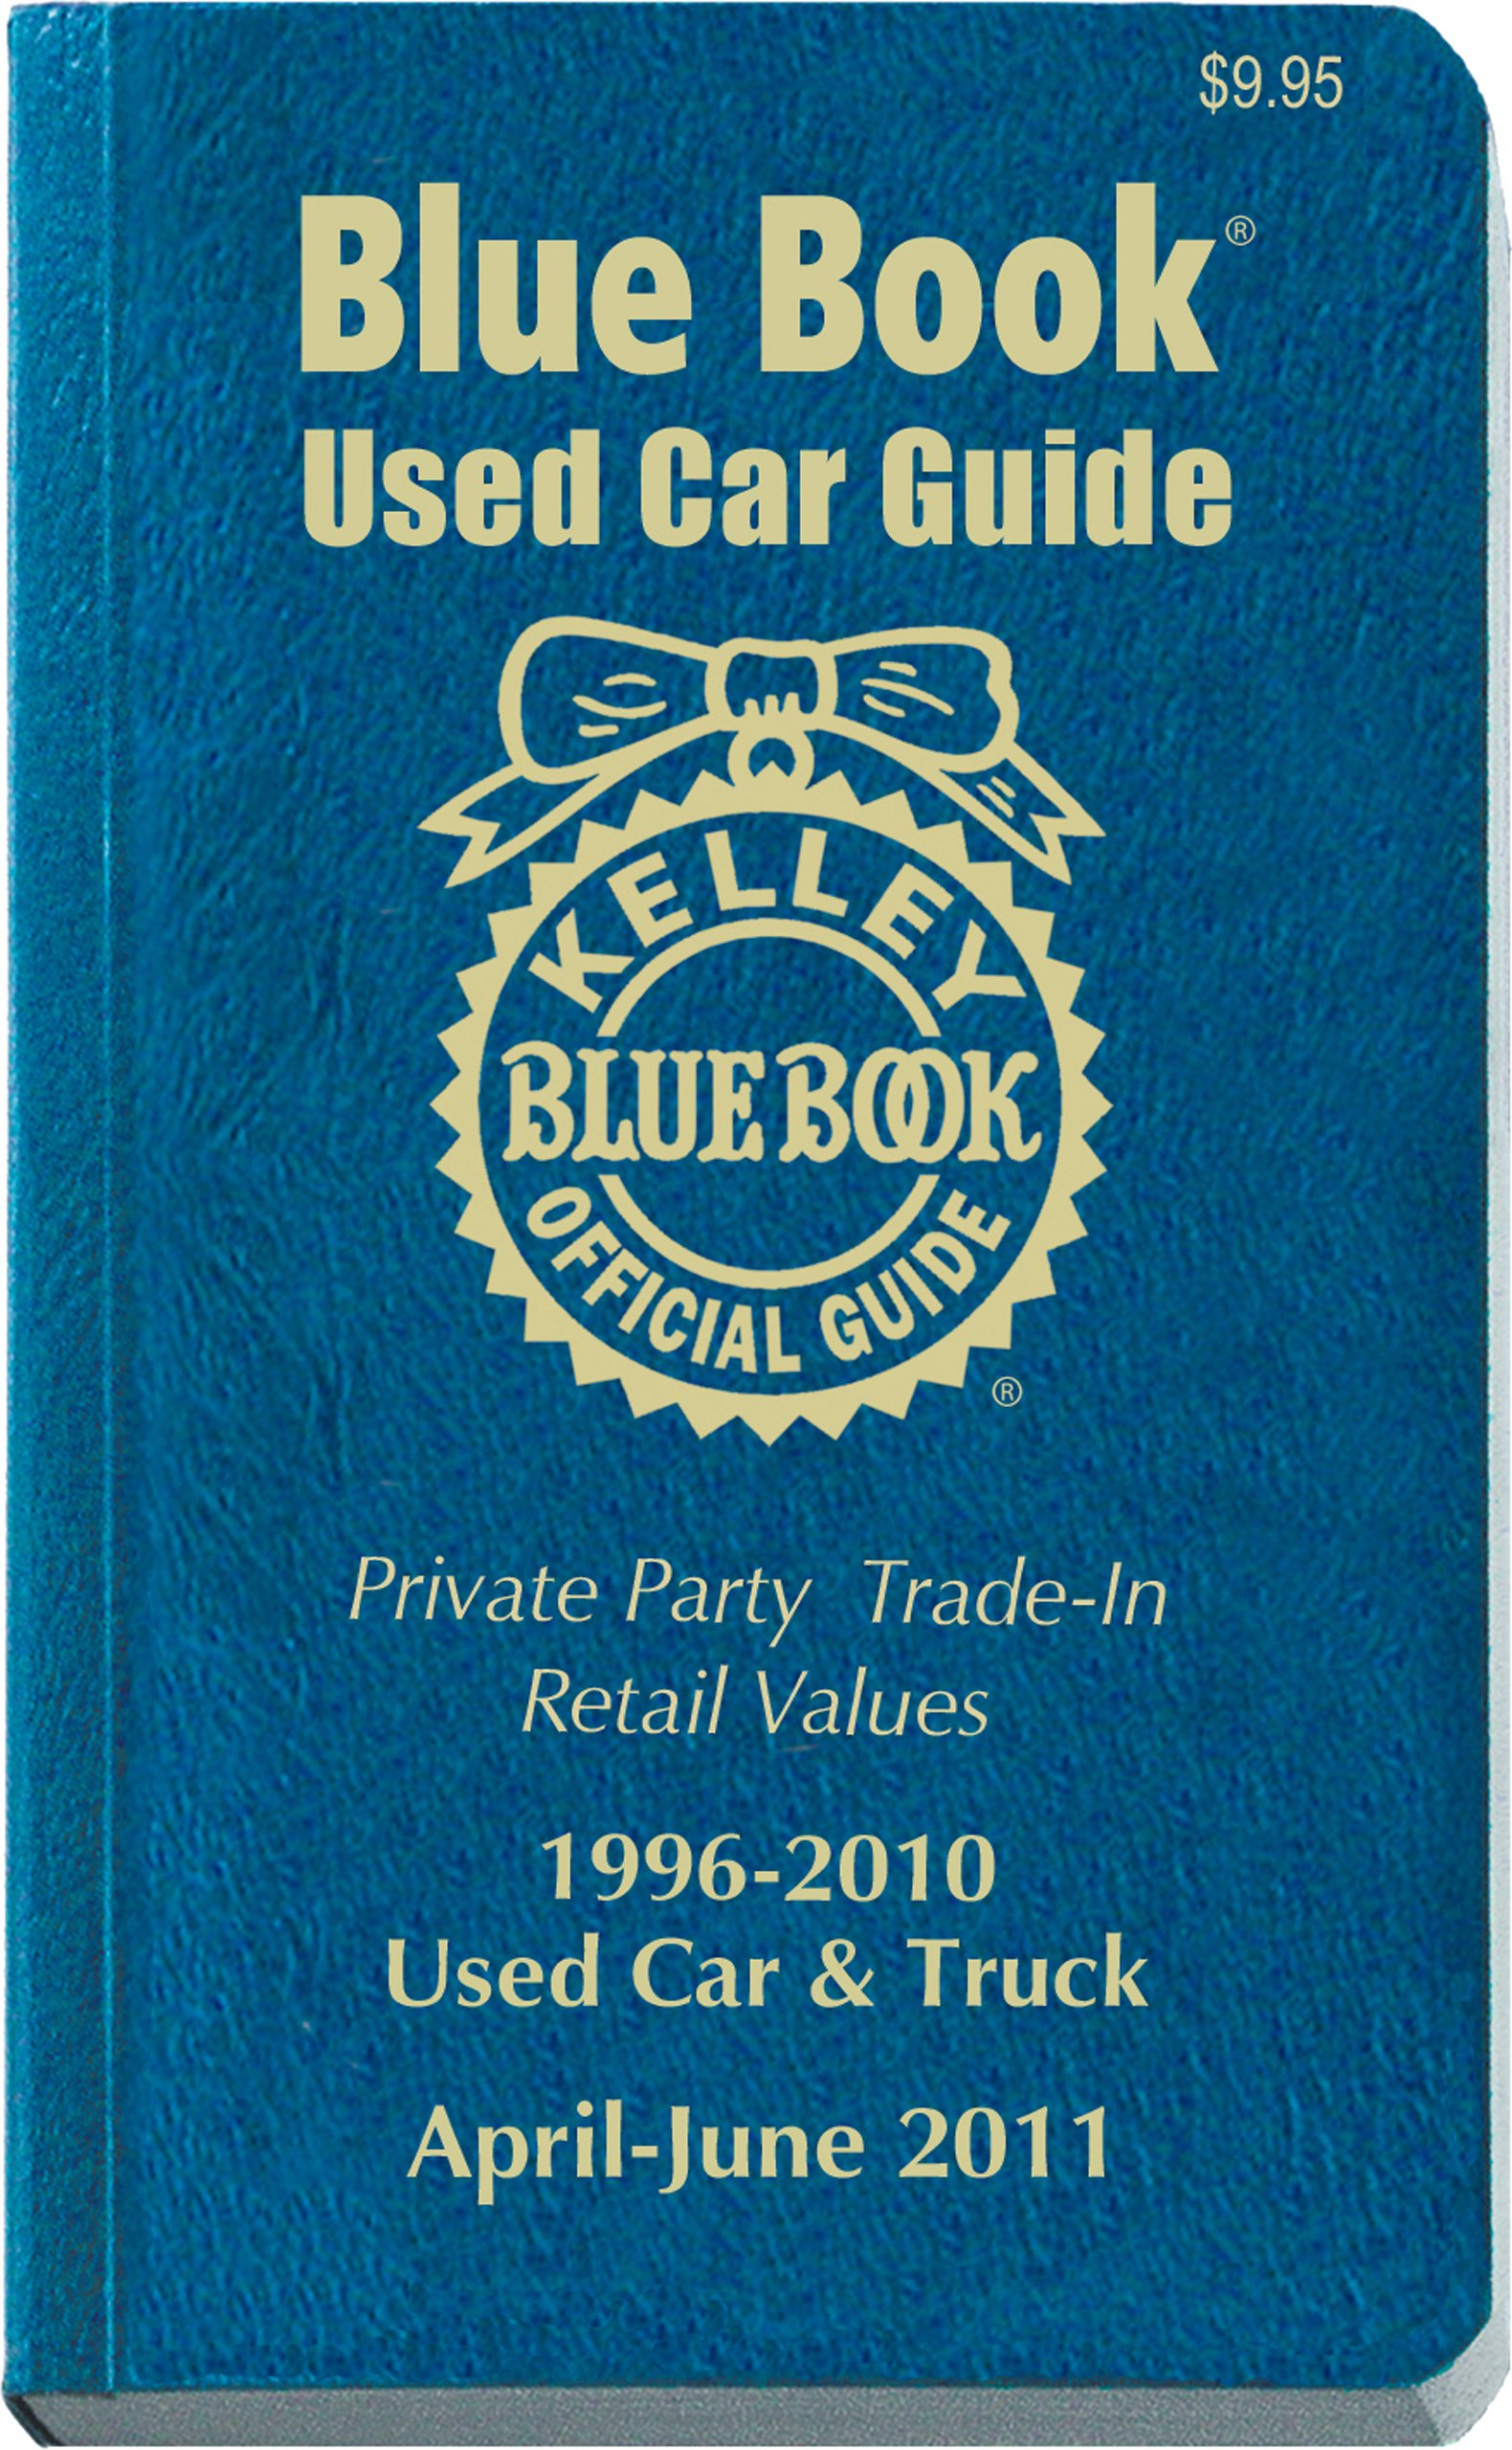 kelley blue book used car guide april june 2011 consumer edition april june 2011 paperback – march 16 2011